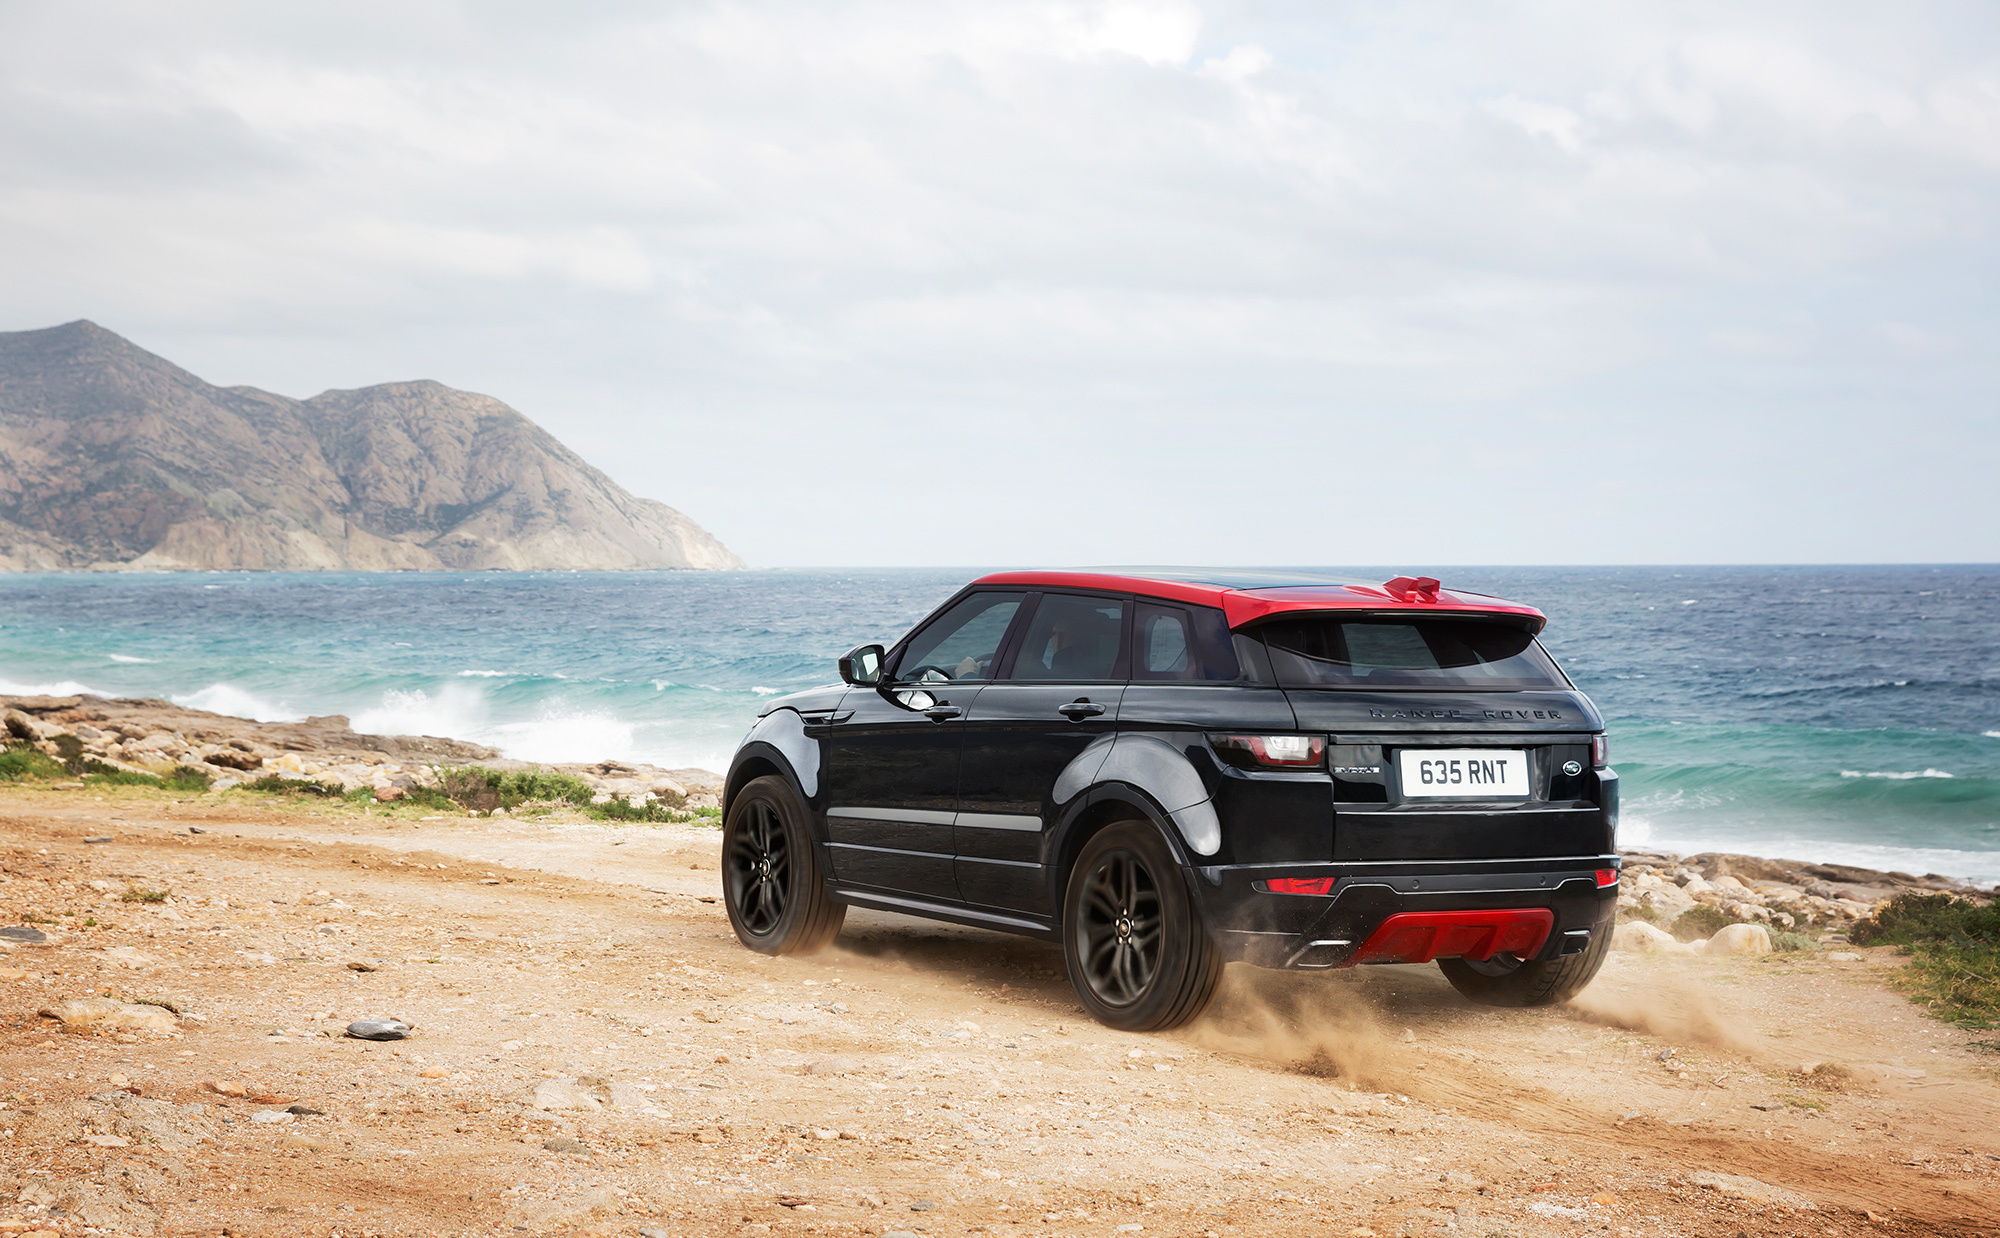 Range Rover Evoque 2017 HD Background